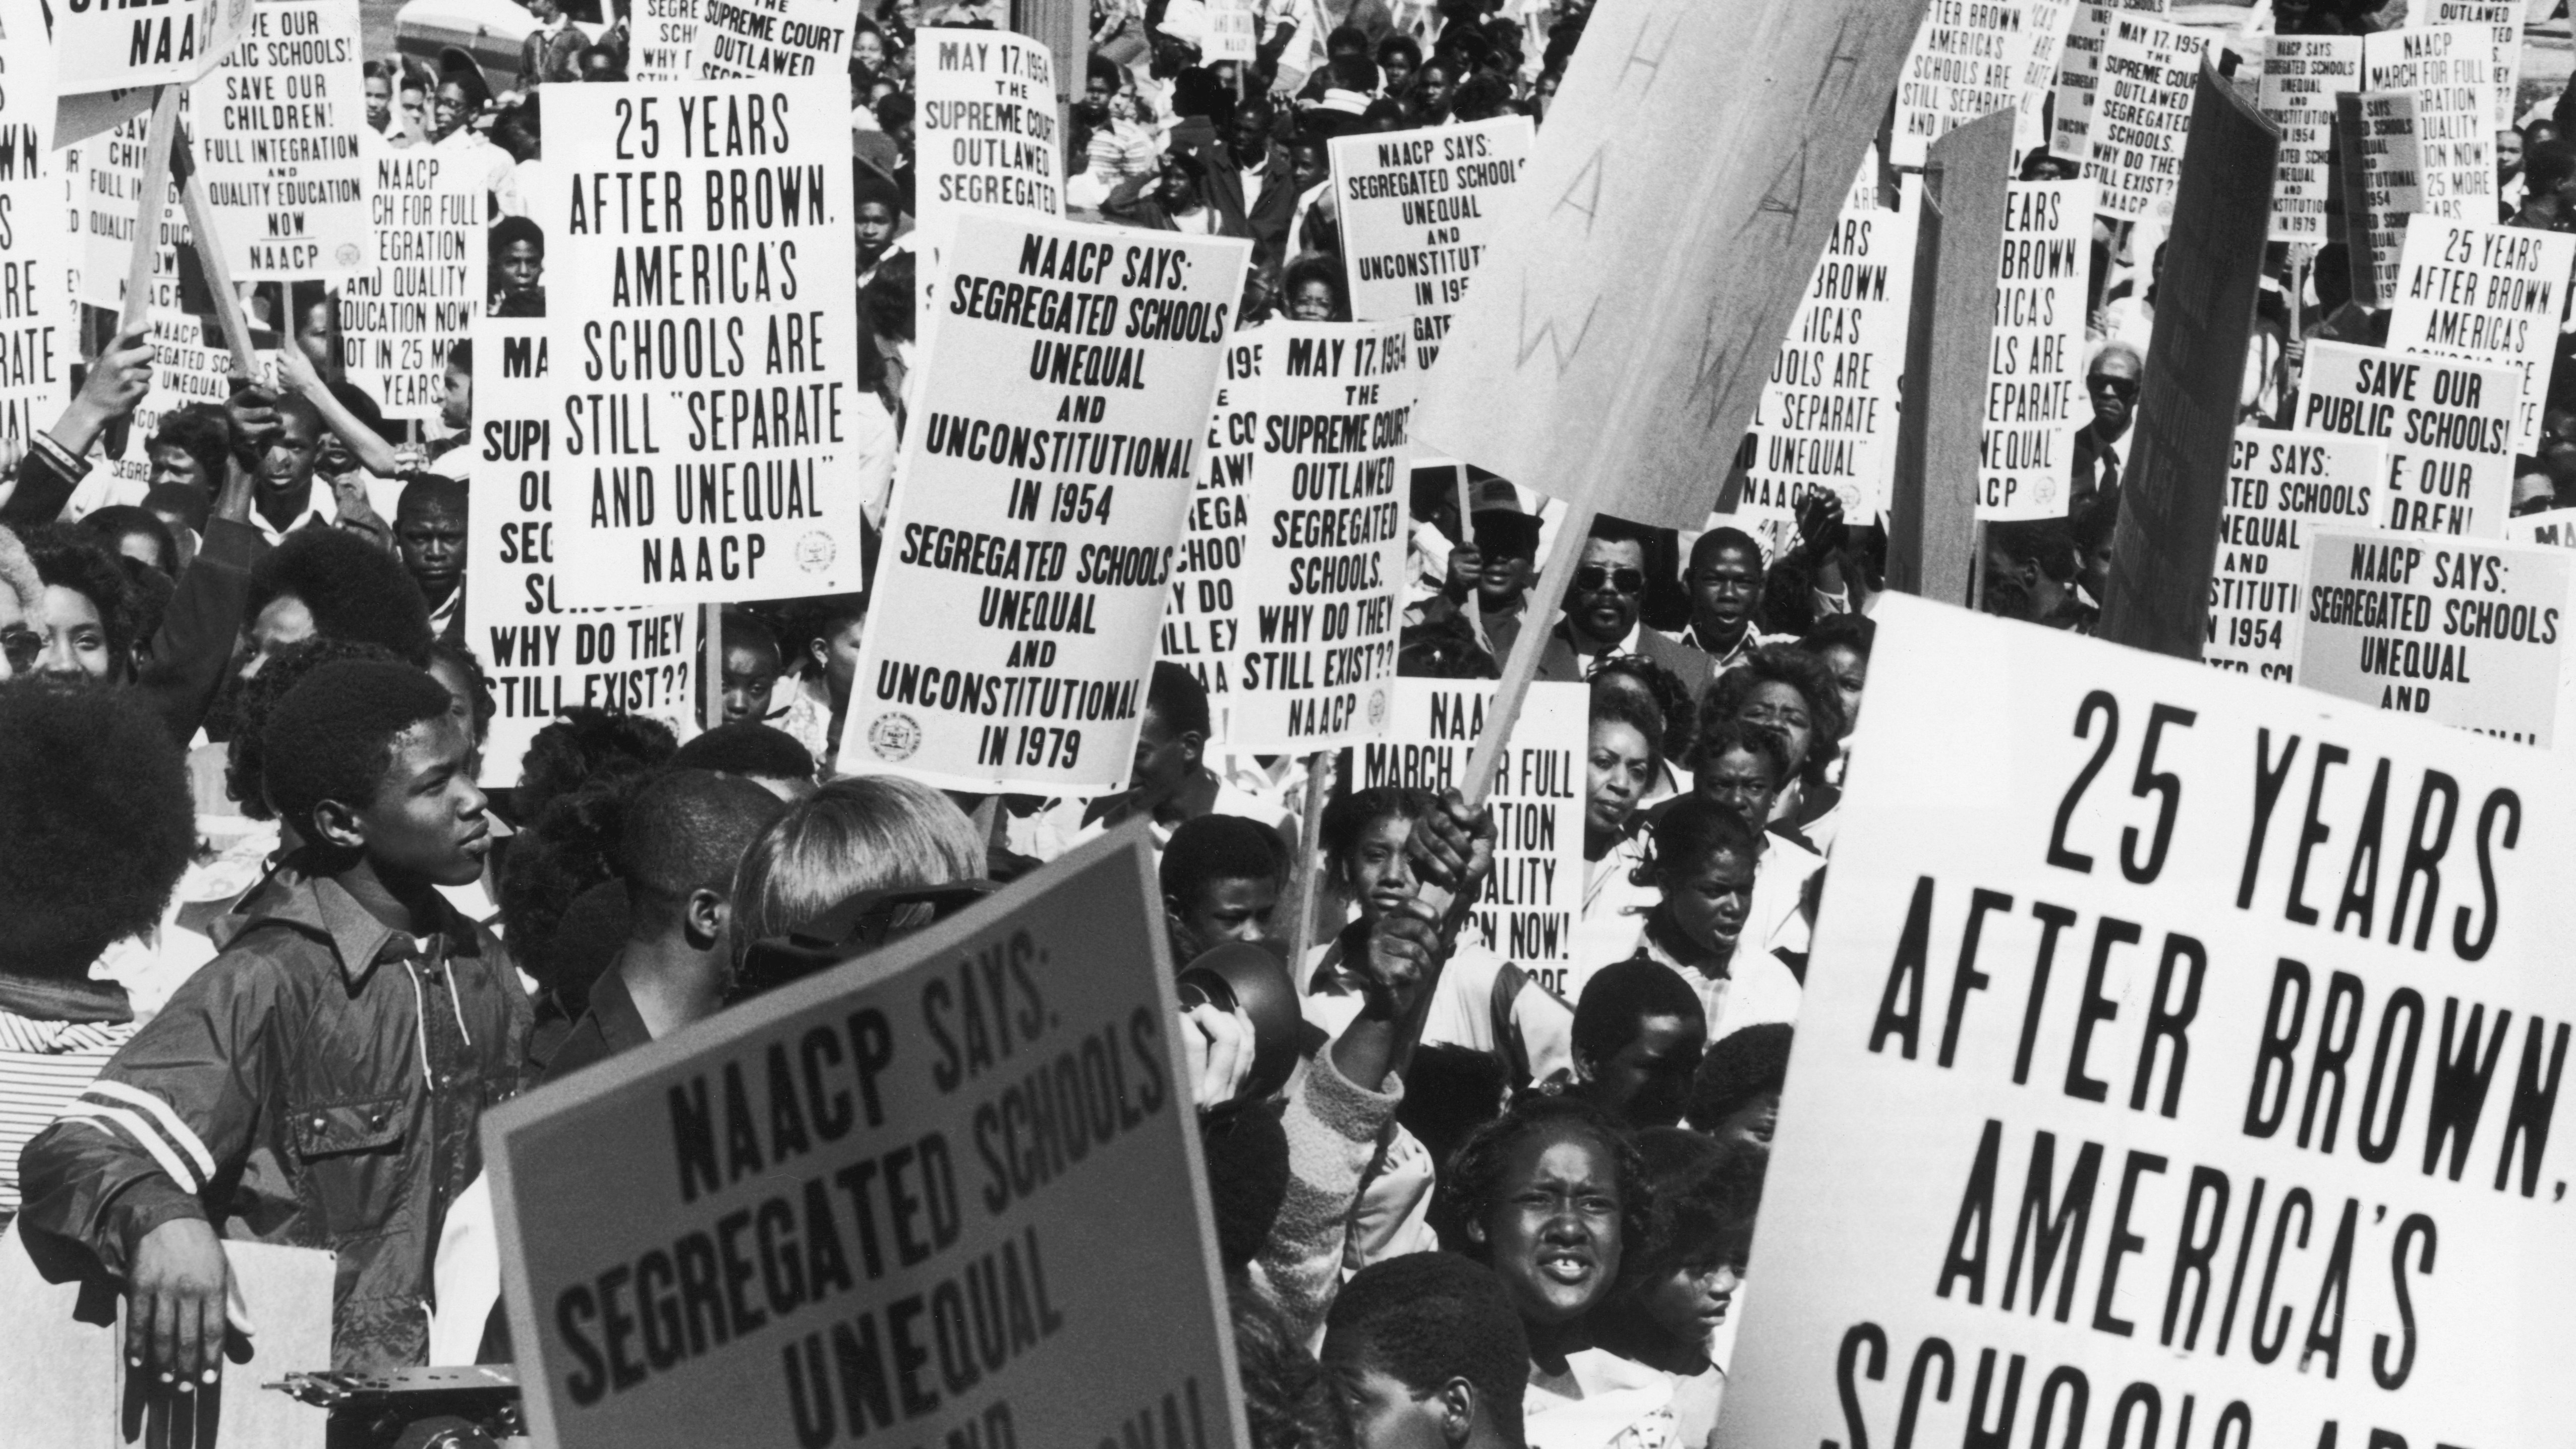 Students and members of the NAACP march in Washington in May 1979, the 25th anniversary of the U.S. Supreme Court ruling that racial segregation in U.S. schools was unconstitutional.